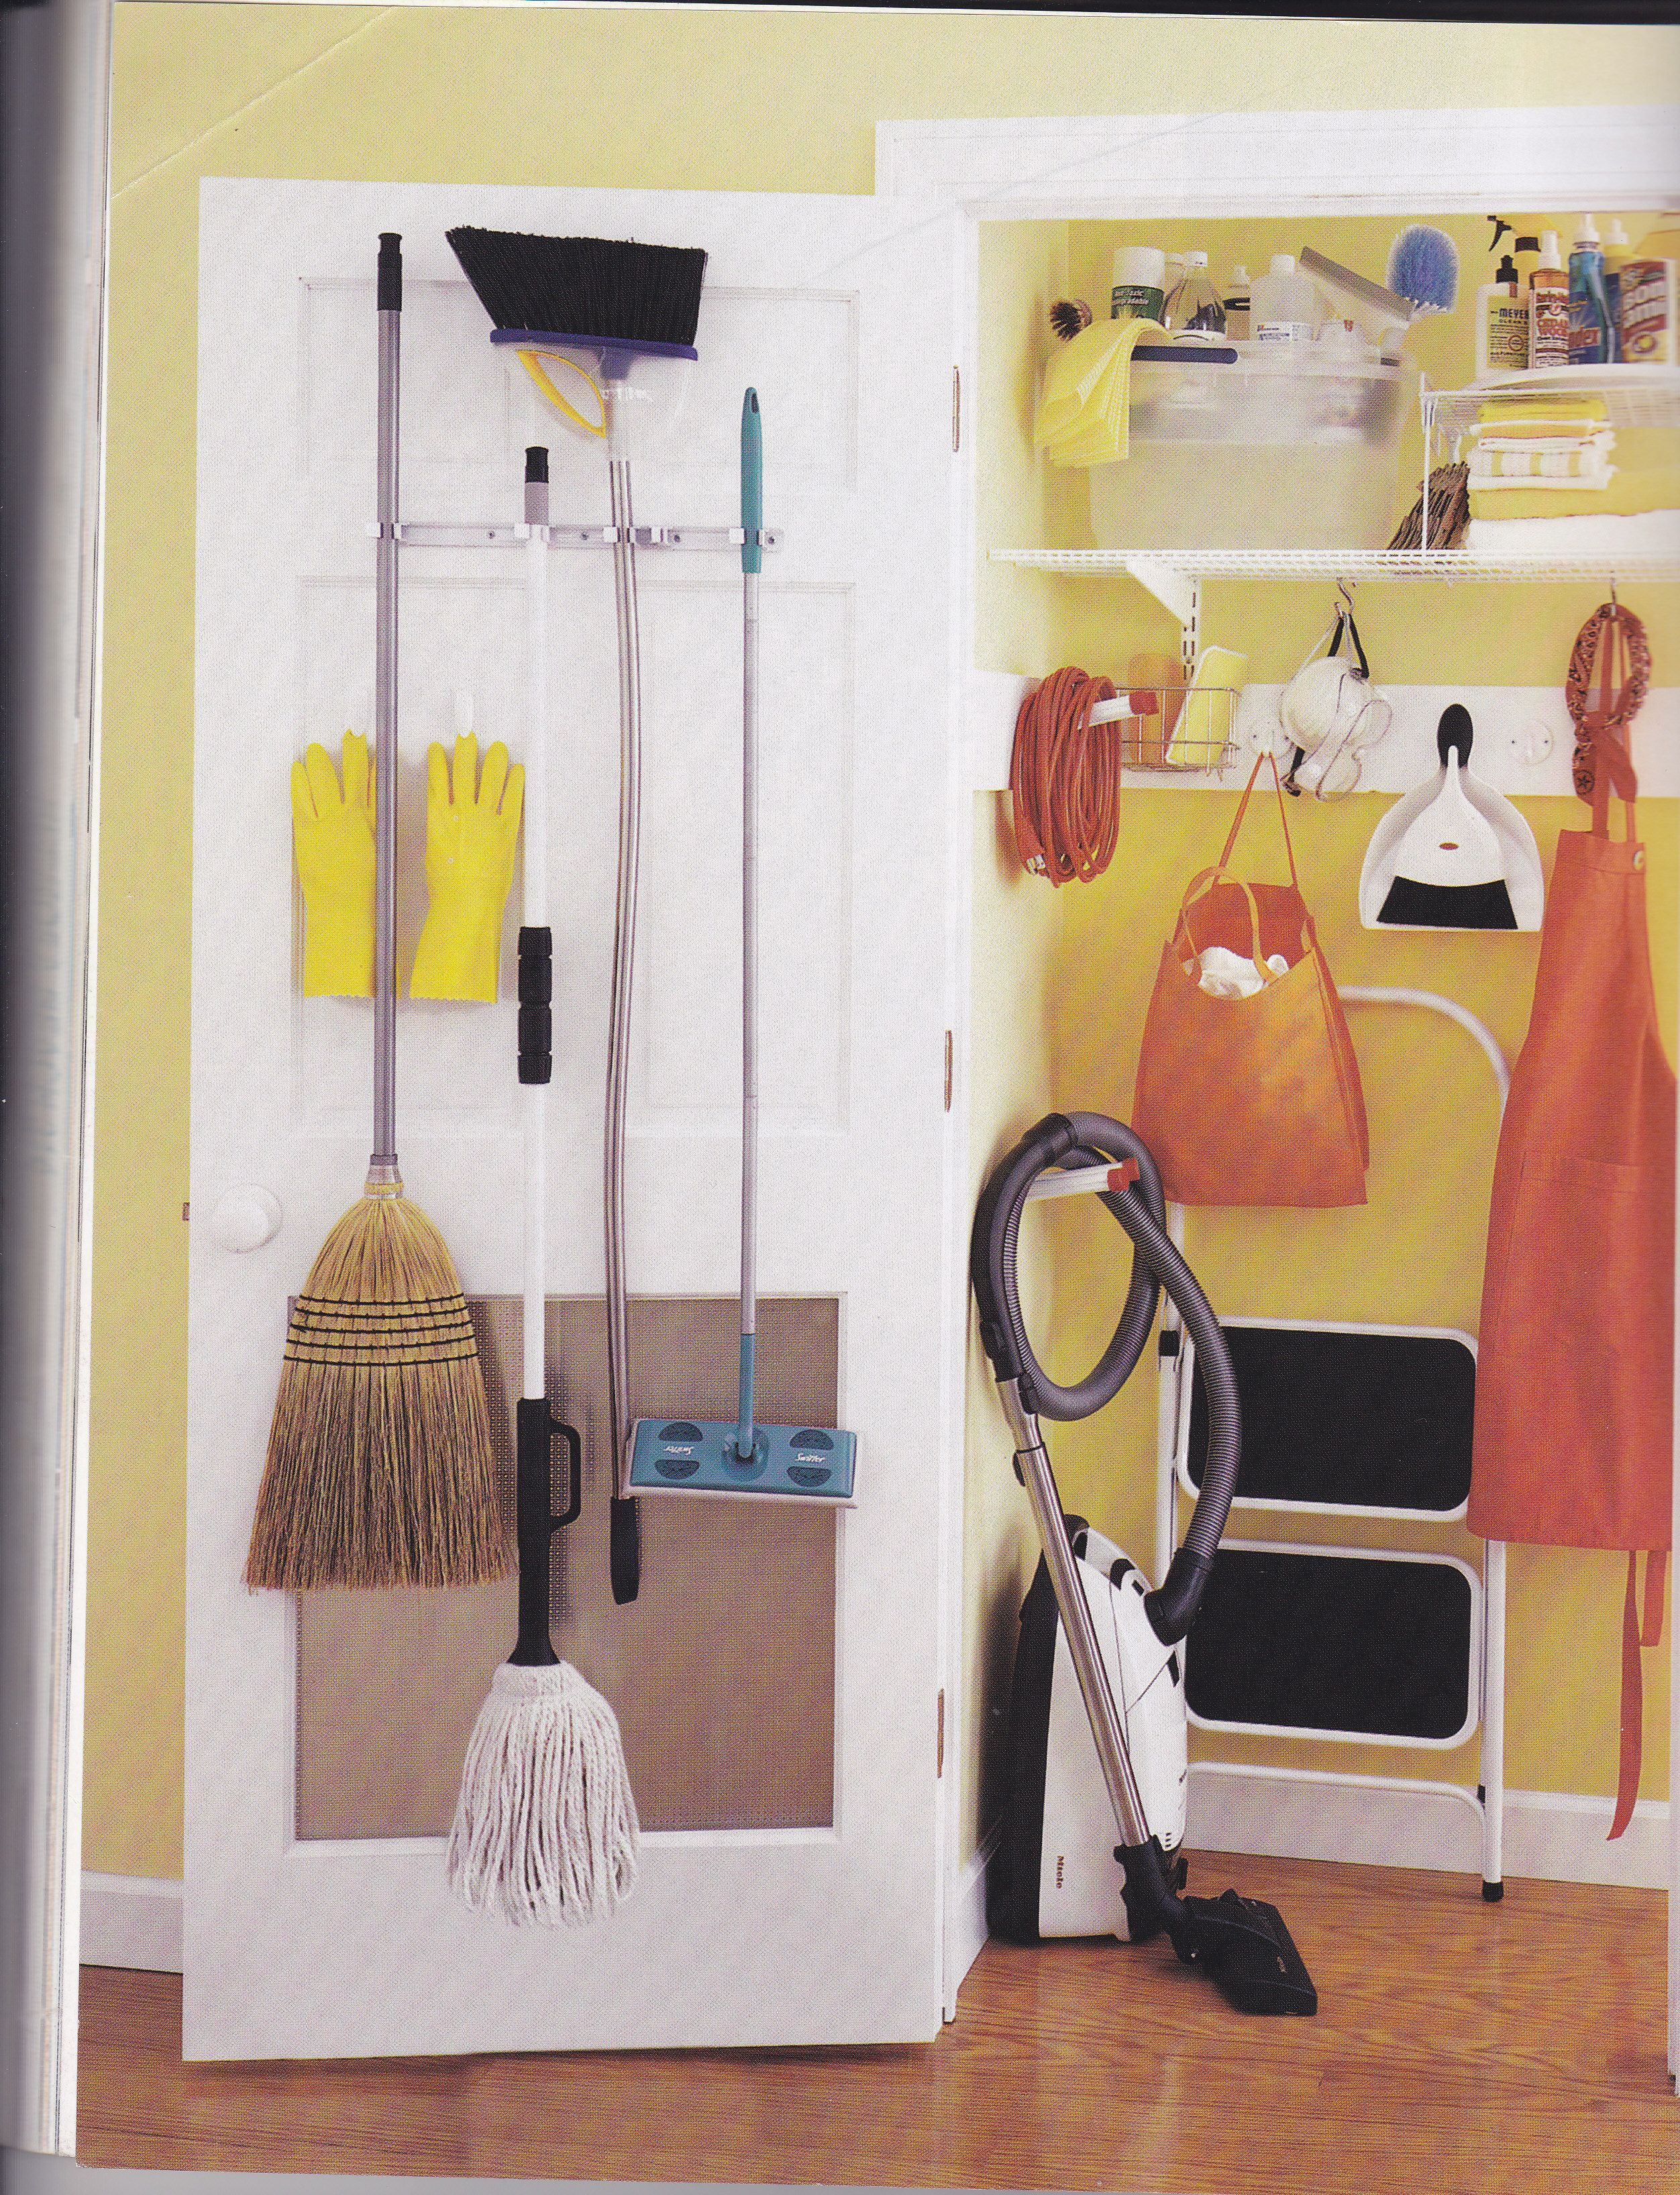 Broom Closet Cleaning Supplies Organization Cleaning Closet